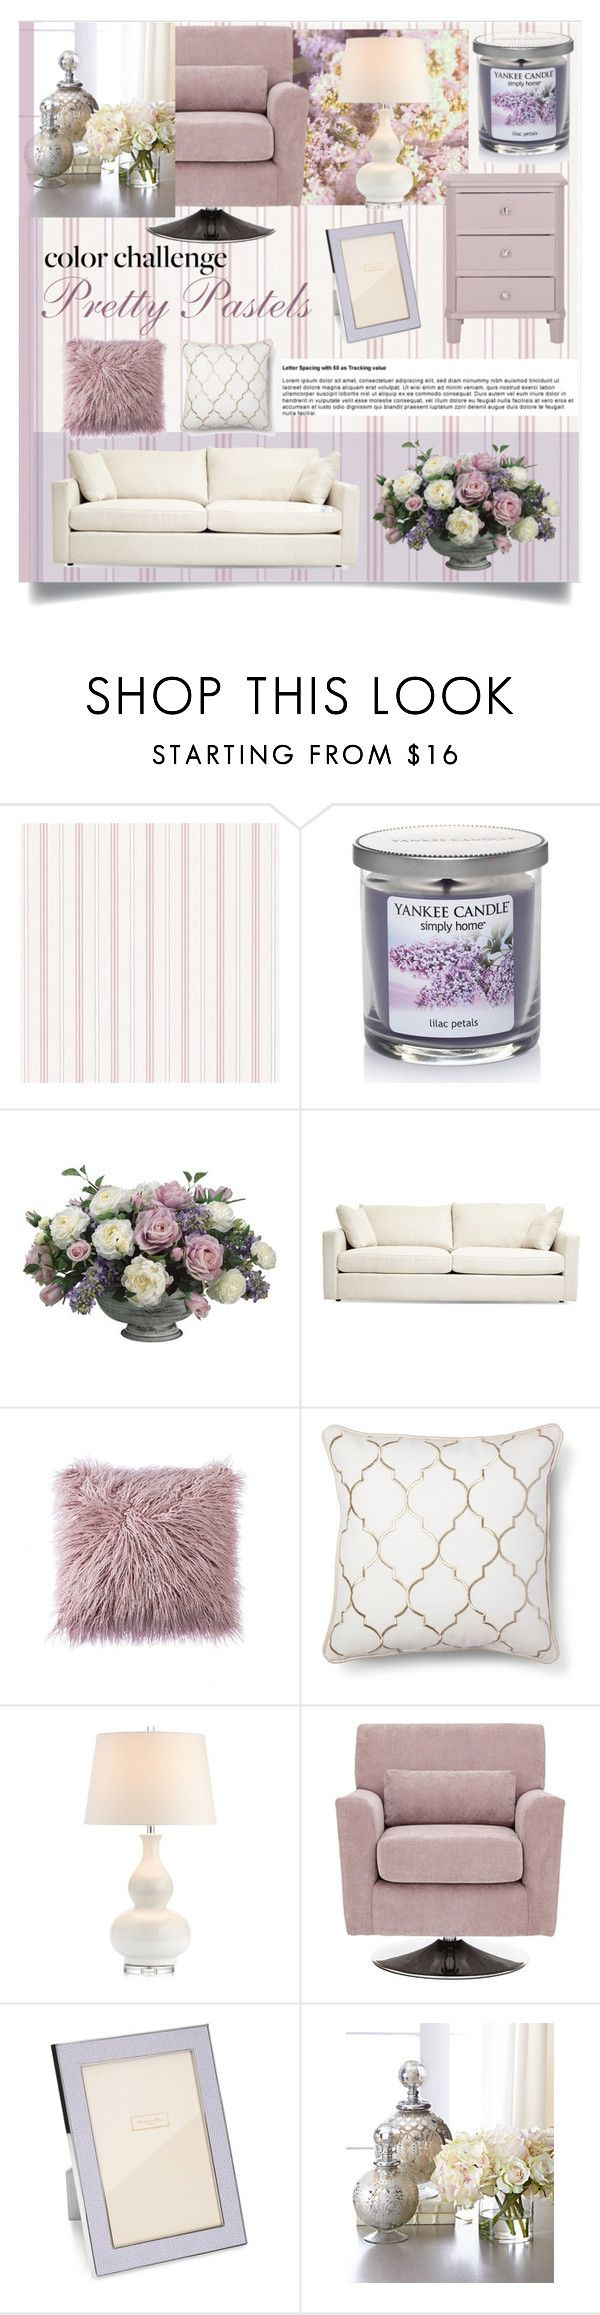 Home decor collage from january 2017 featuring currey company -  Color Challenge Pretty Pastels By Sarah 09013112 On Polyvore Featuring Interior